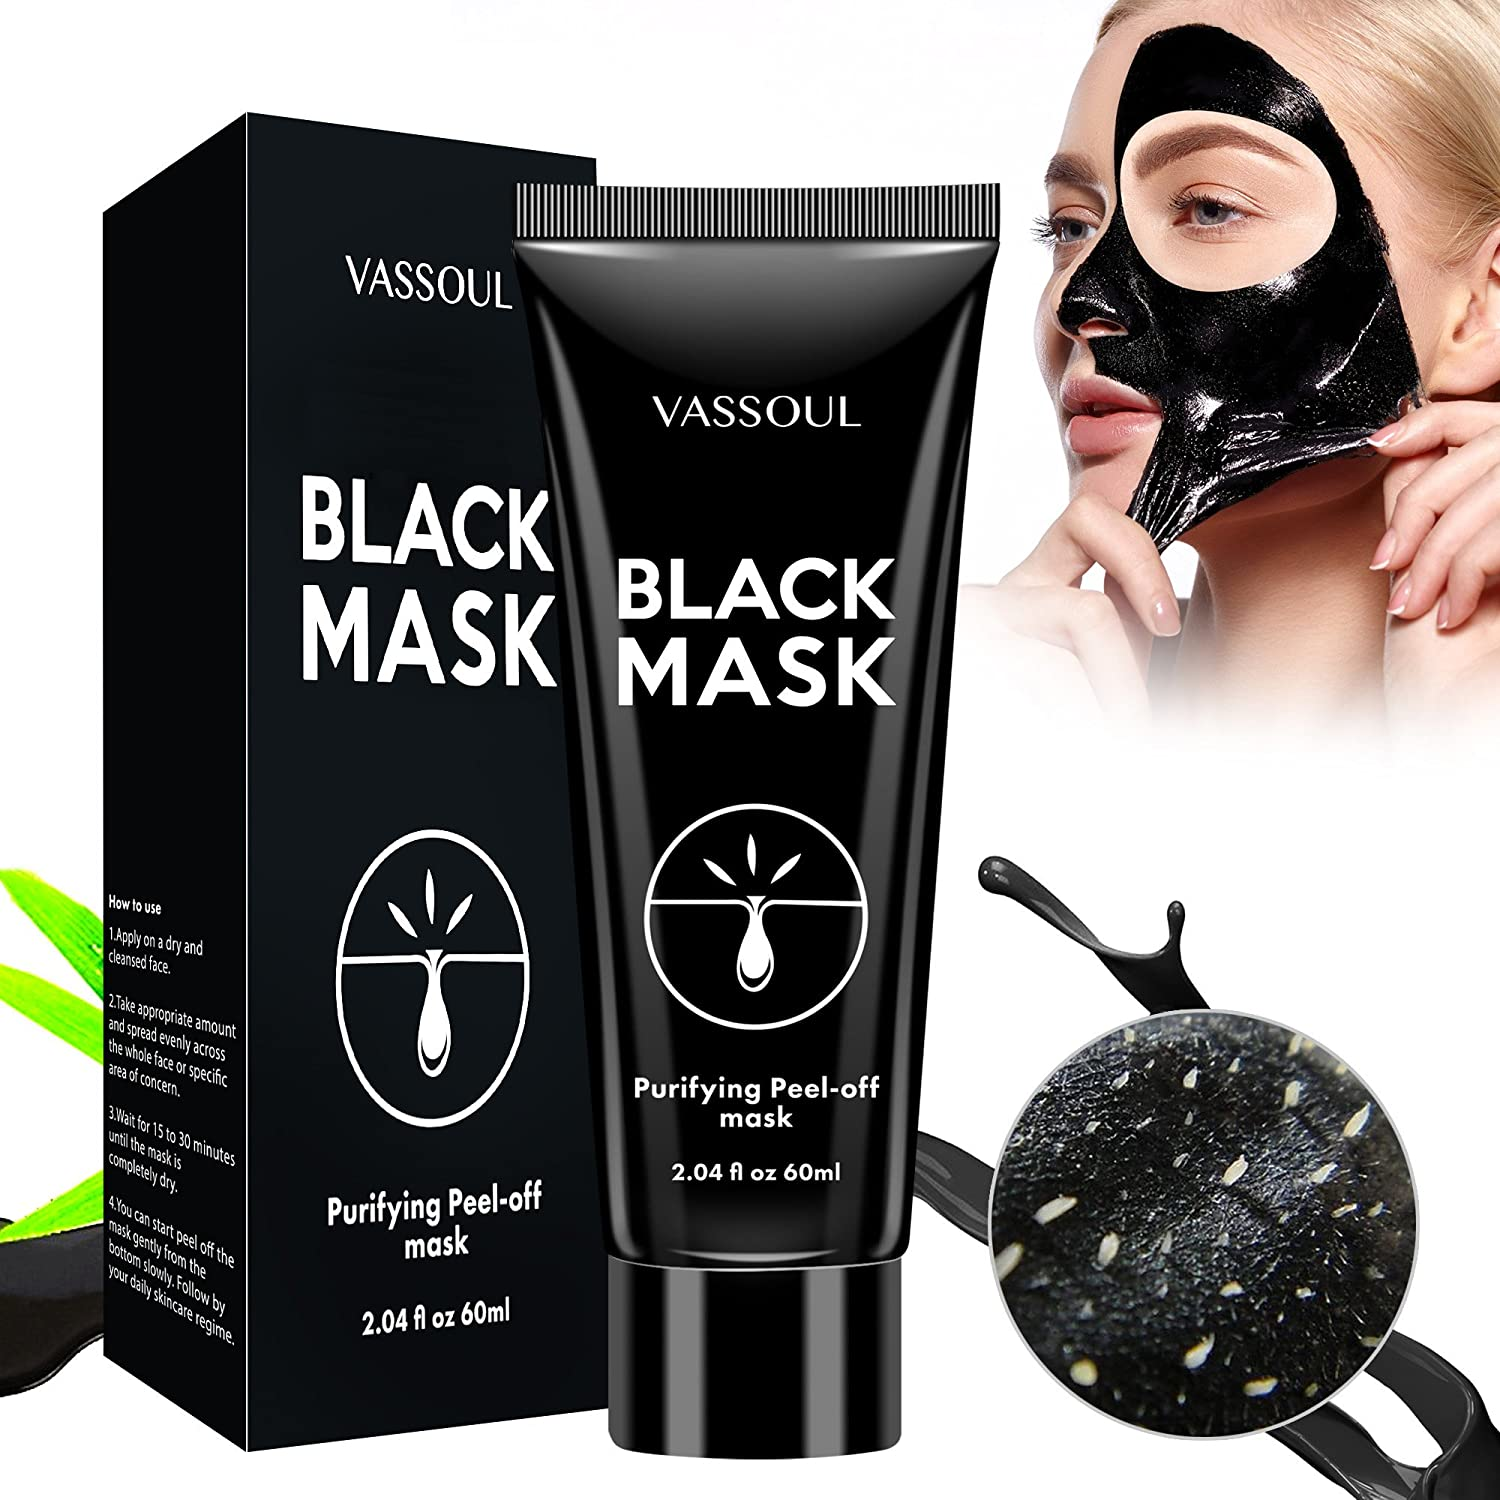 Vassoul Blackhead Remover Mask, Peel Off Blackhead Mask, Blackhead Remover - Deep Cleansing Black Mask, Bamboo Activated Charcoal Peel-Off Mask OBBR